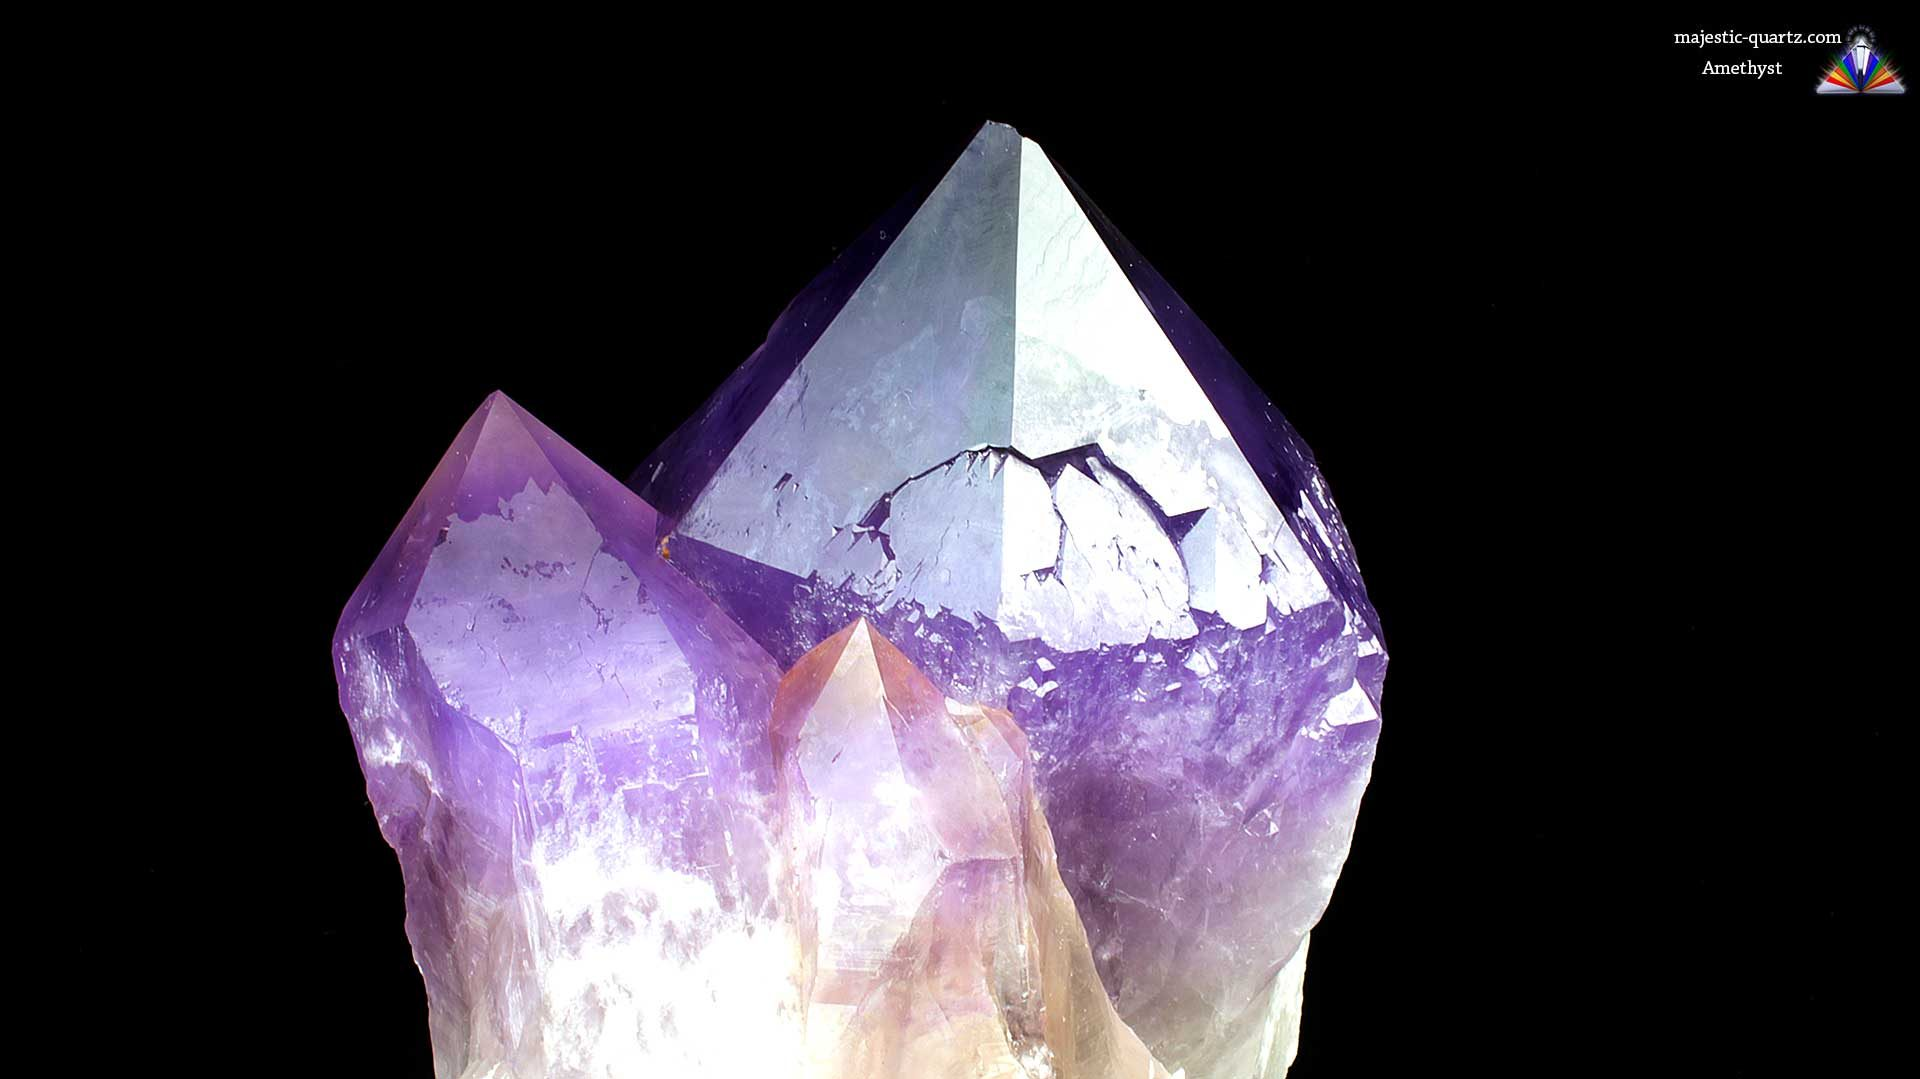 Amethyst Quartz Crystal Point - Mineral Specimen